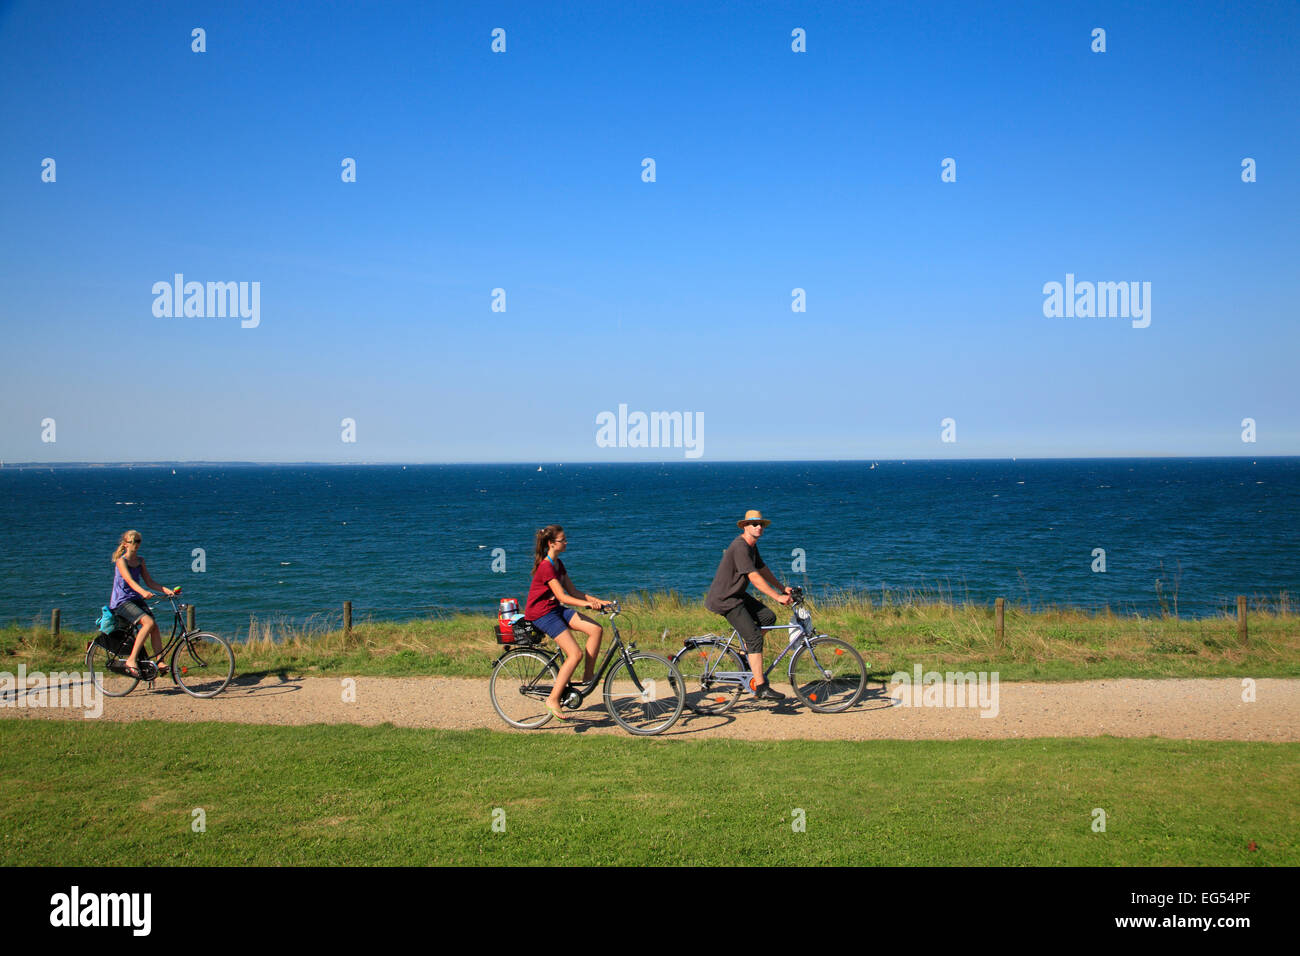 Bicyclists at  Brodten cliff near Travemuende, Baltic Sea coast, Schleswig-Holstein, Germany, Europe - Stock Image